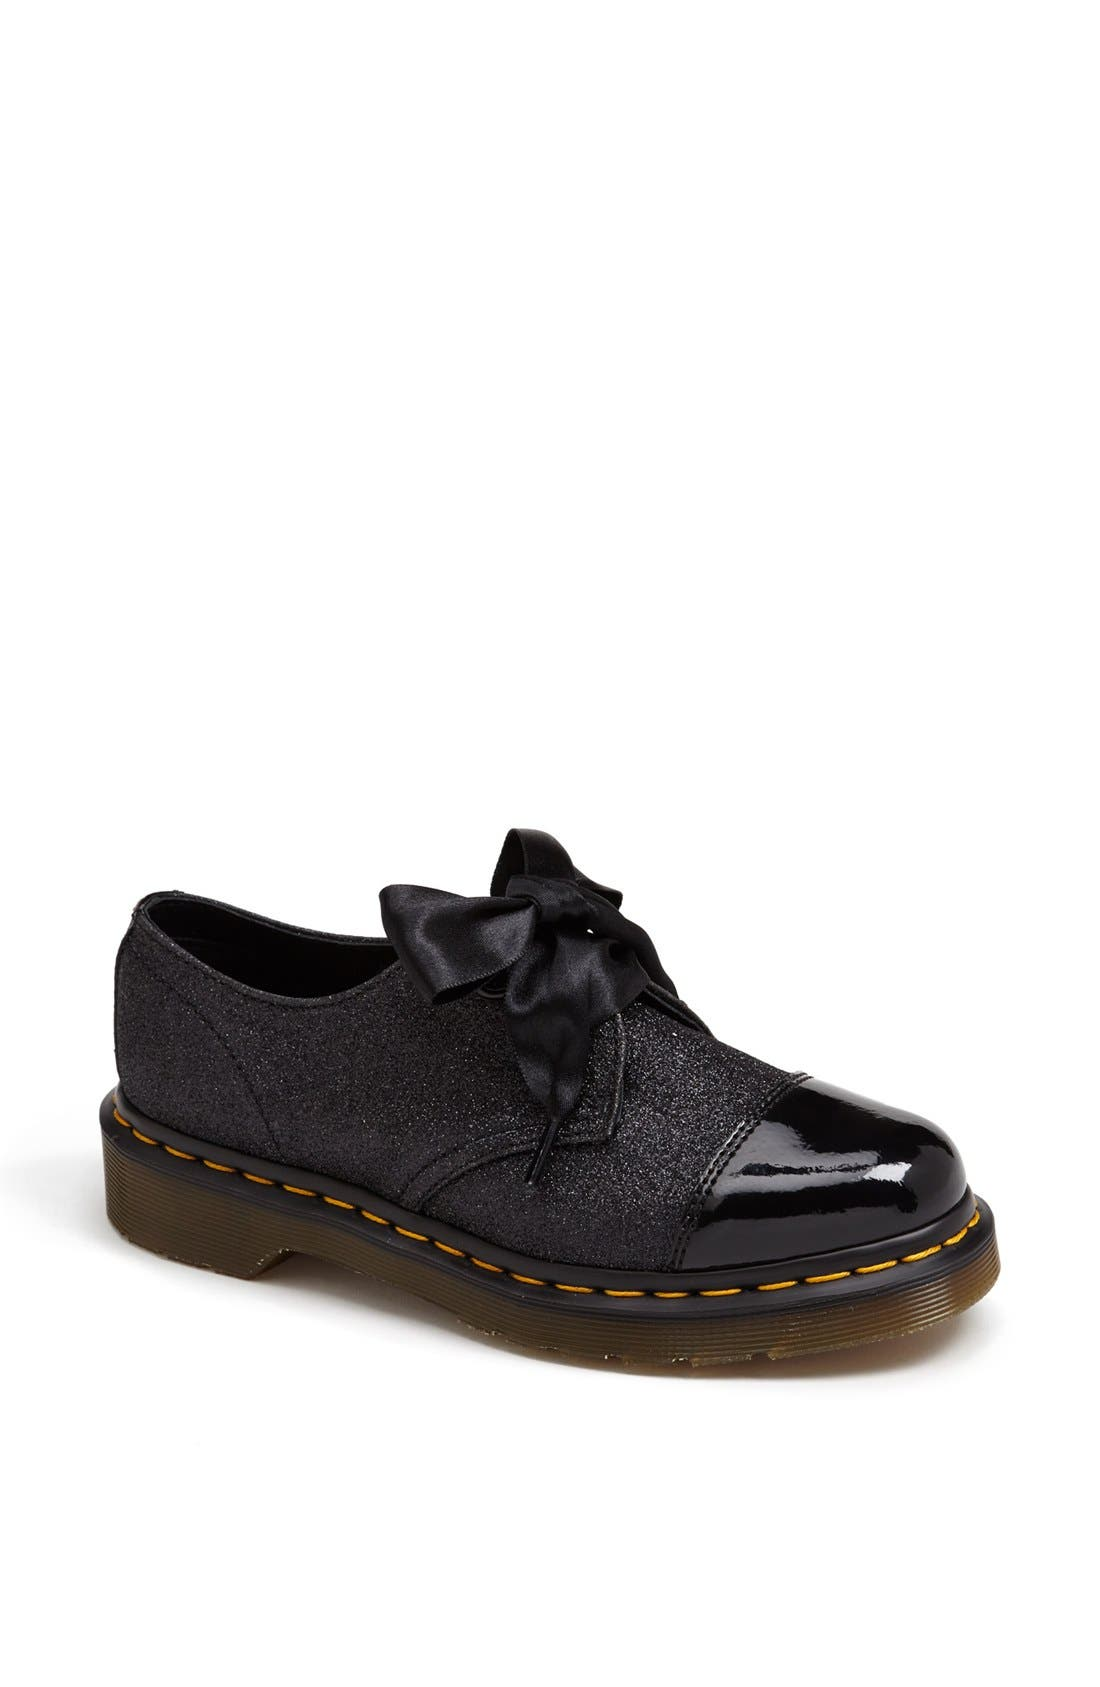 Alternate Image 1 Selected - Dr. Martens 'Bow' Cap Toe Oxford